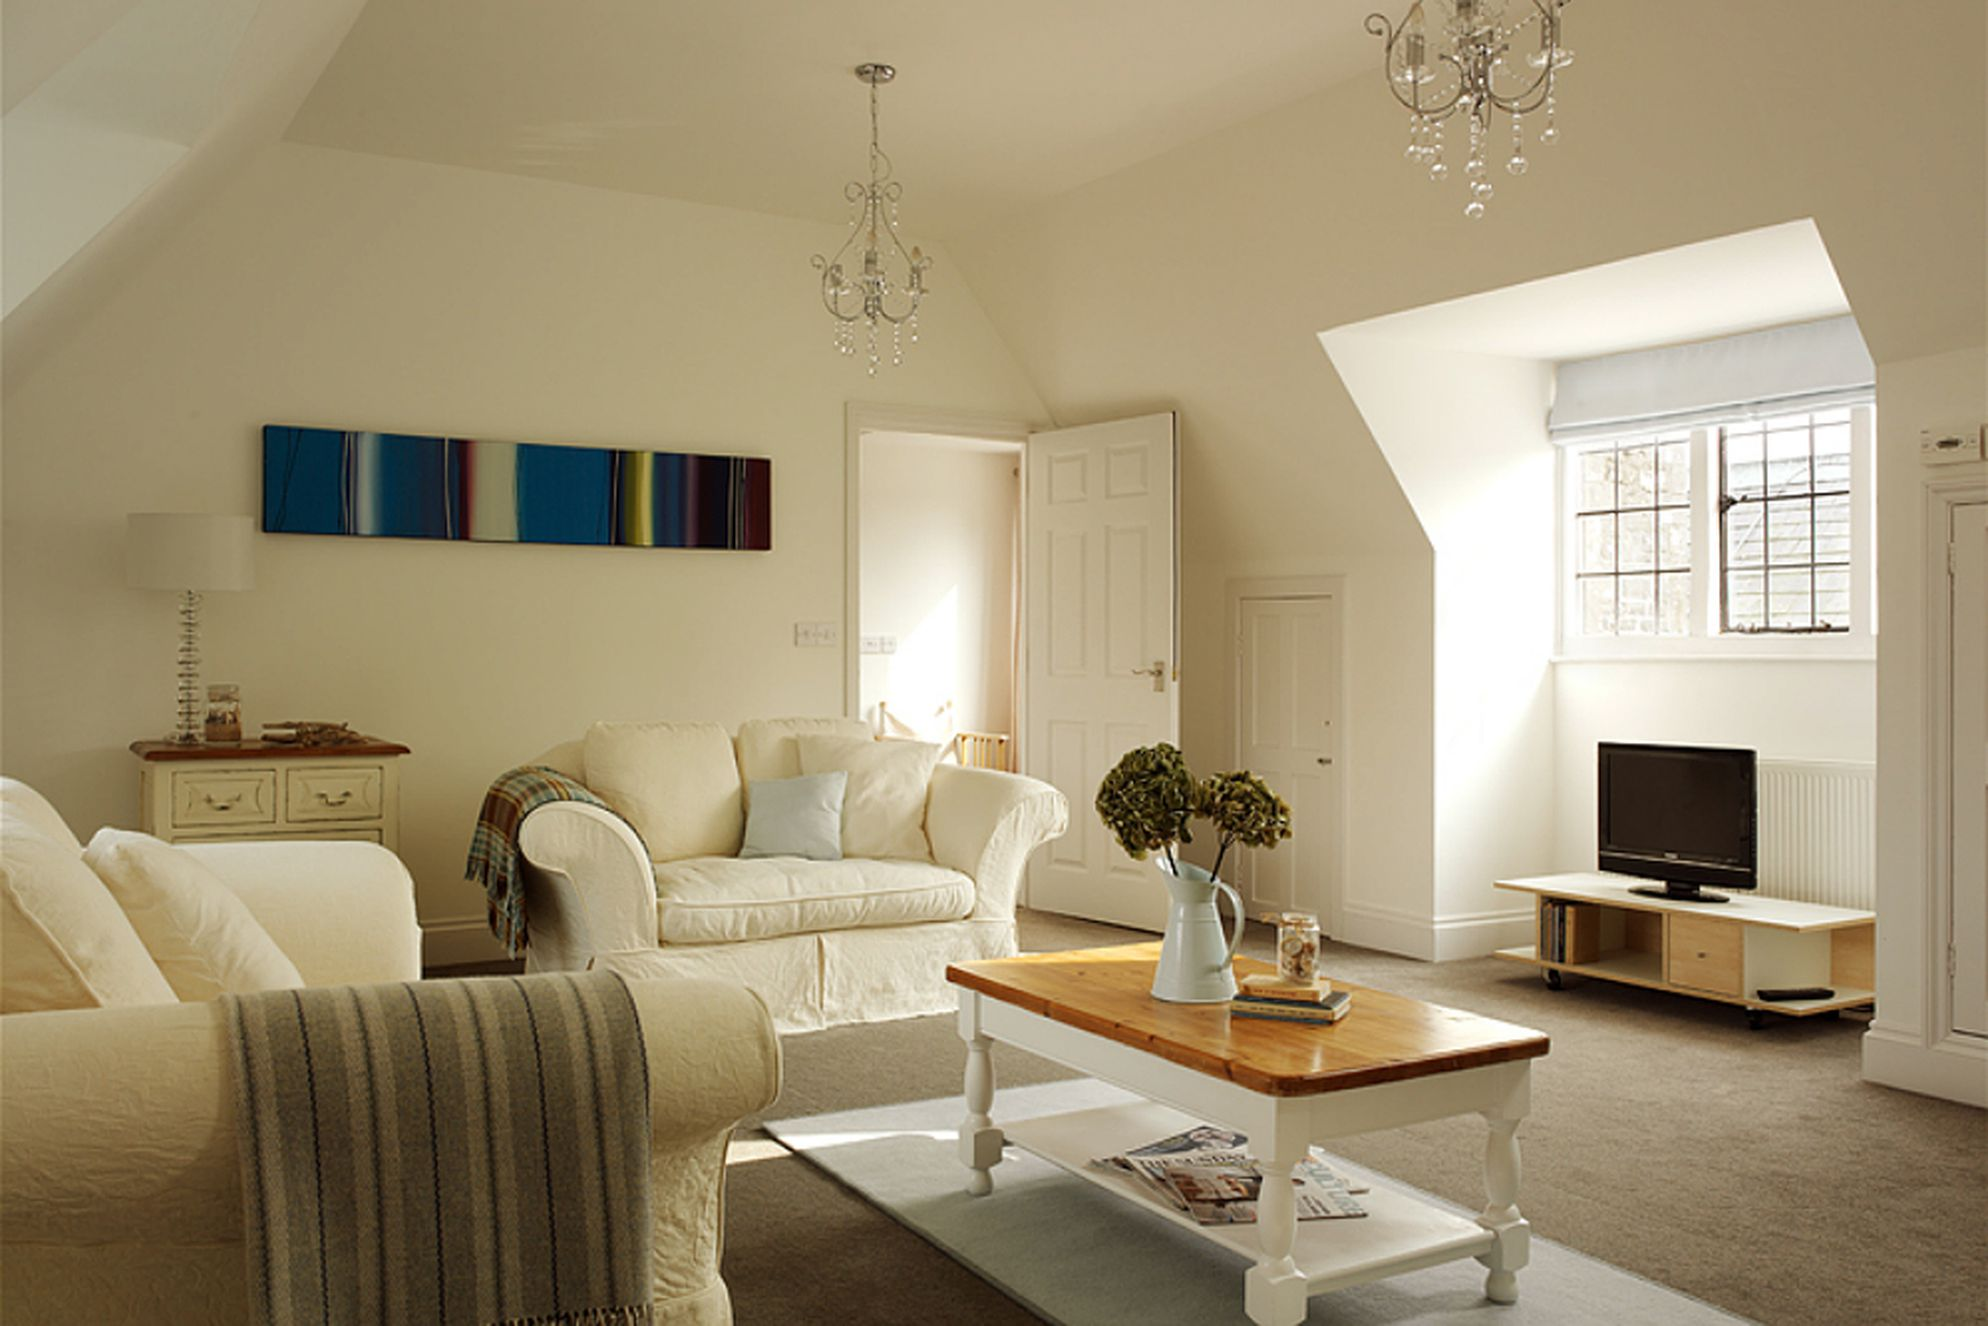 The West Wing at Pickwell Manor - Gallery